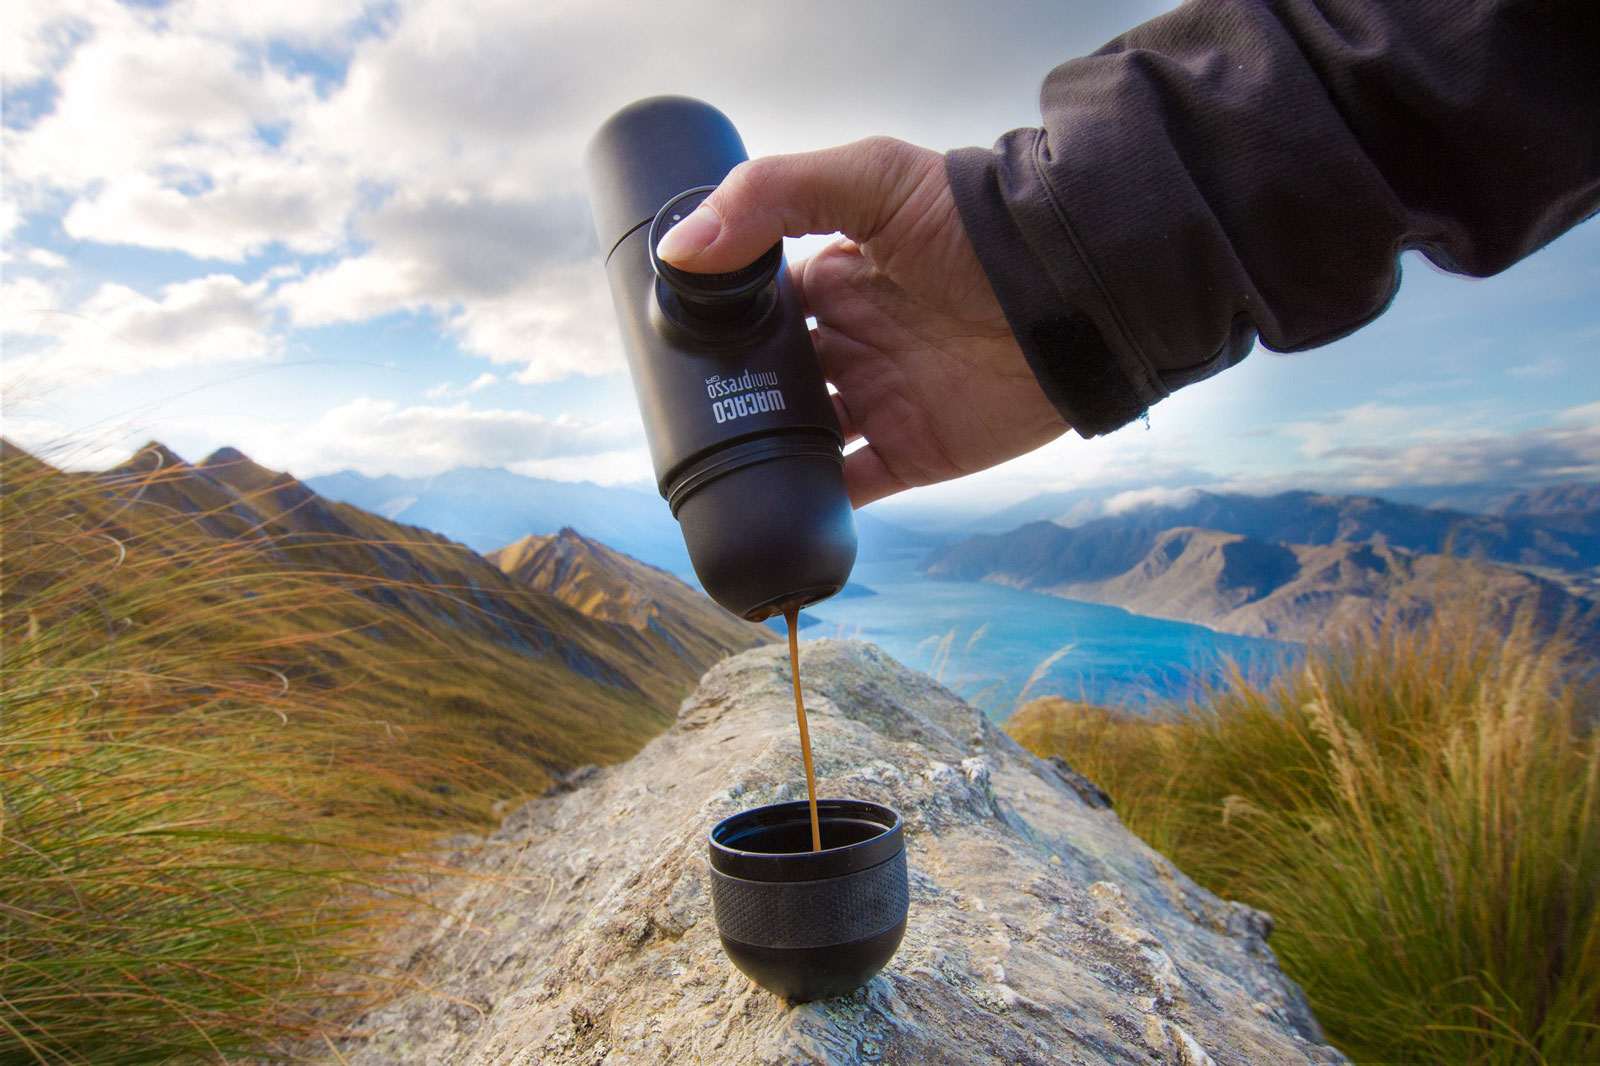 A person making coffee on a mountain using a portable coffee gadget